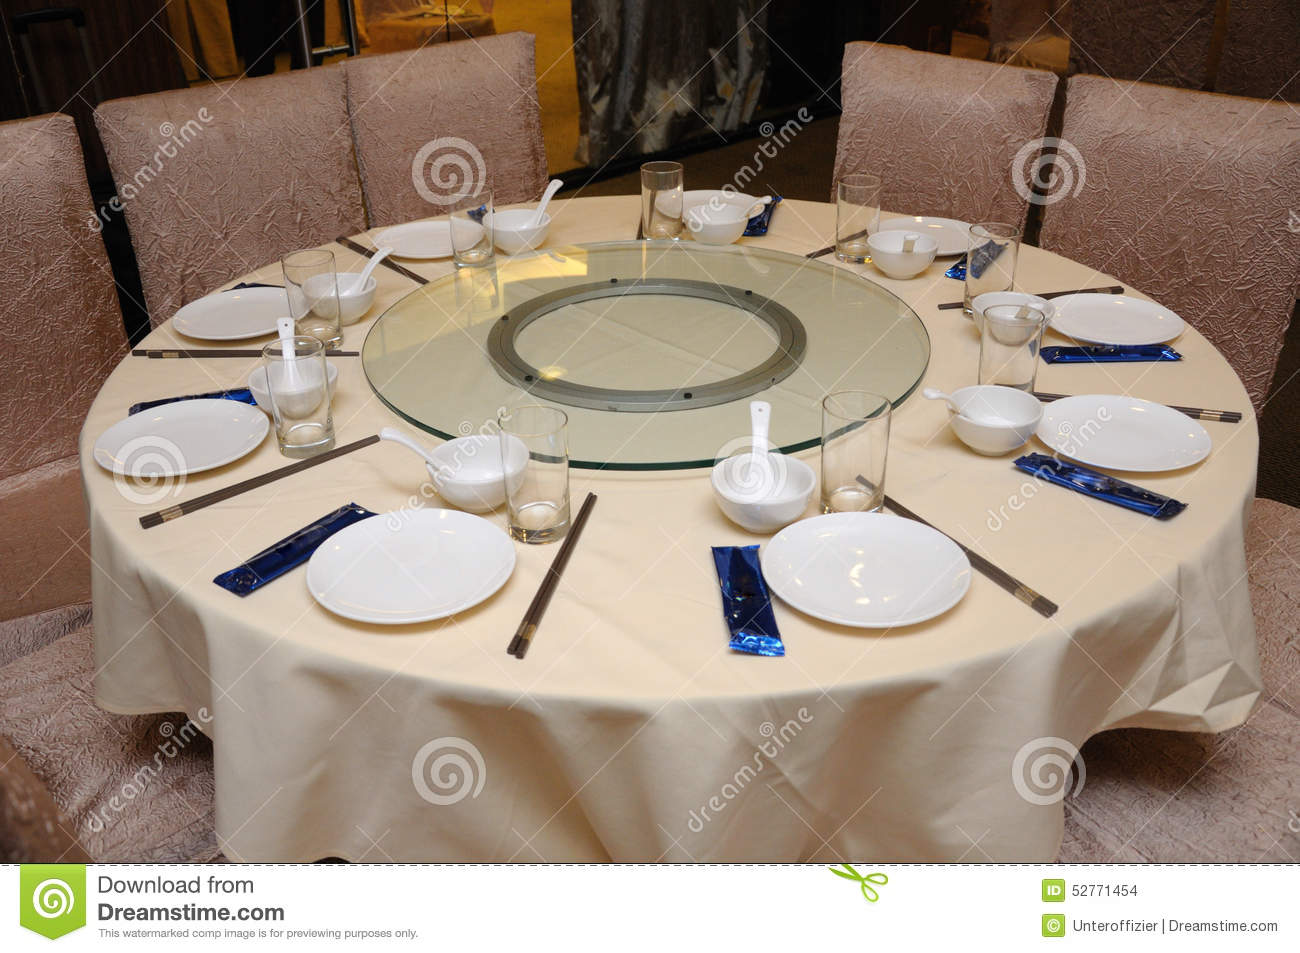 Oriental restaurant table setting stock photo image for How do i set a table